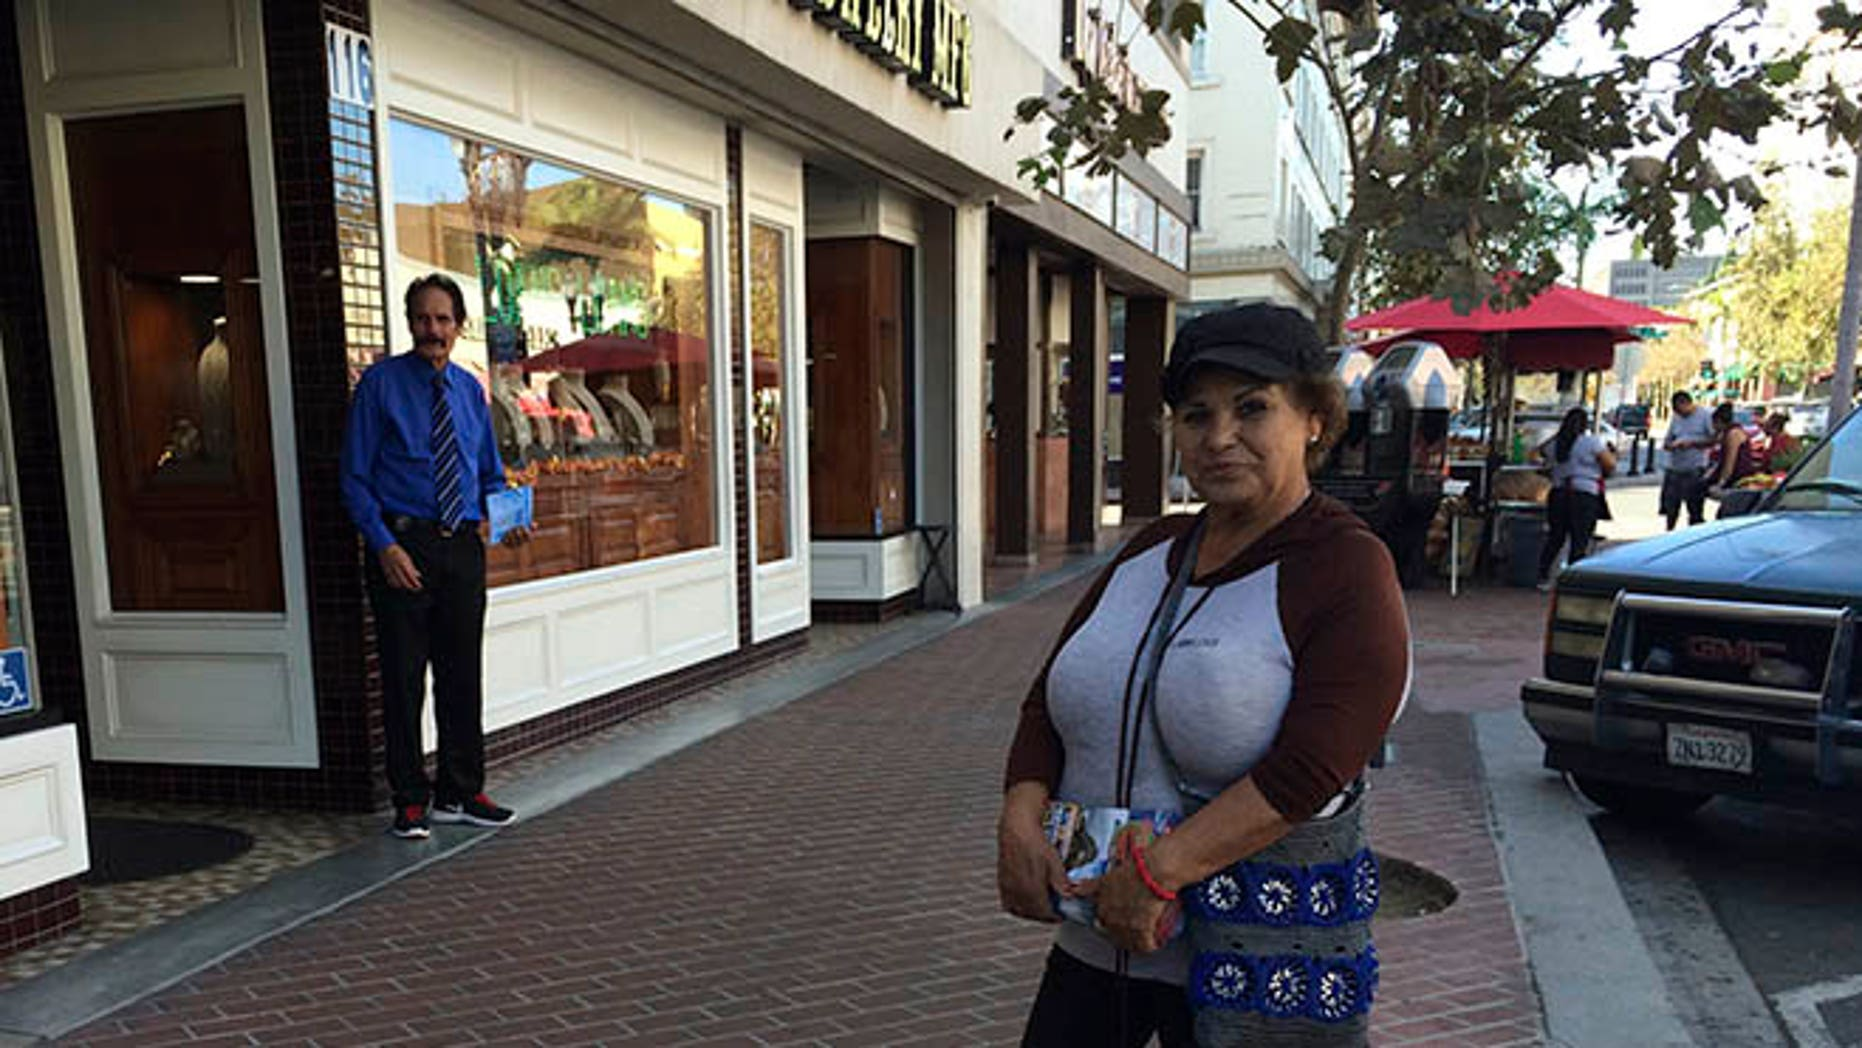 Alicia Ramirez, 67, hands out fliers to passers-by on a busy street in a largely Latino area lined with money transfer businesses and shops selling elegant gowns for quinceanera celebrations, on Wednesday, Nov. 9, 2016, in Santa Ana, Calif. She said she's afraid of what a Trump victory will mean for immigrants like her who lack legal papers. (AP Photo/Amy Taxin)